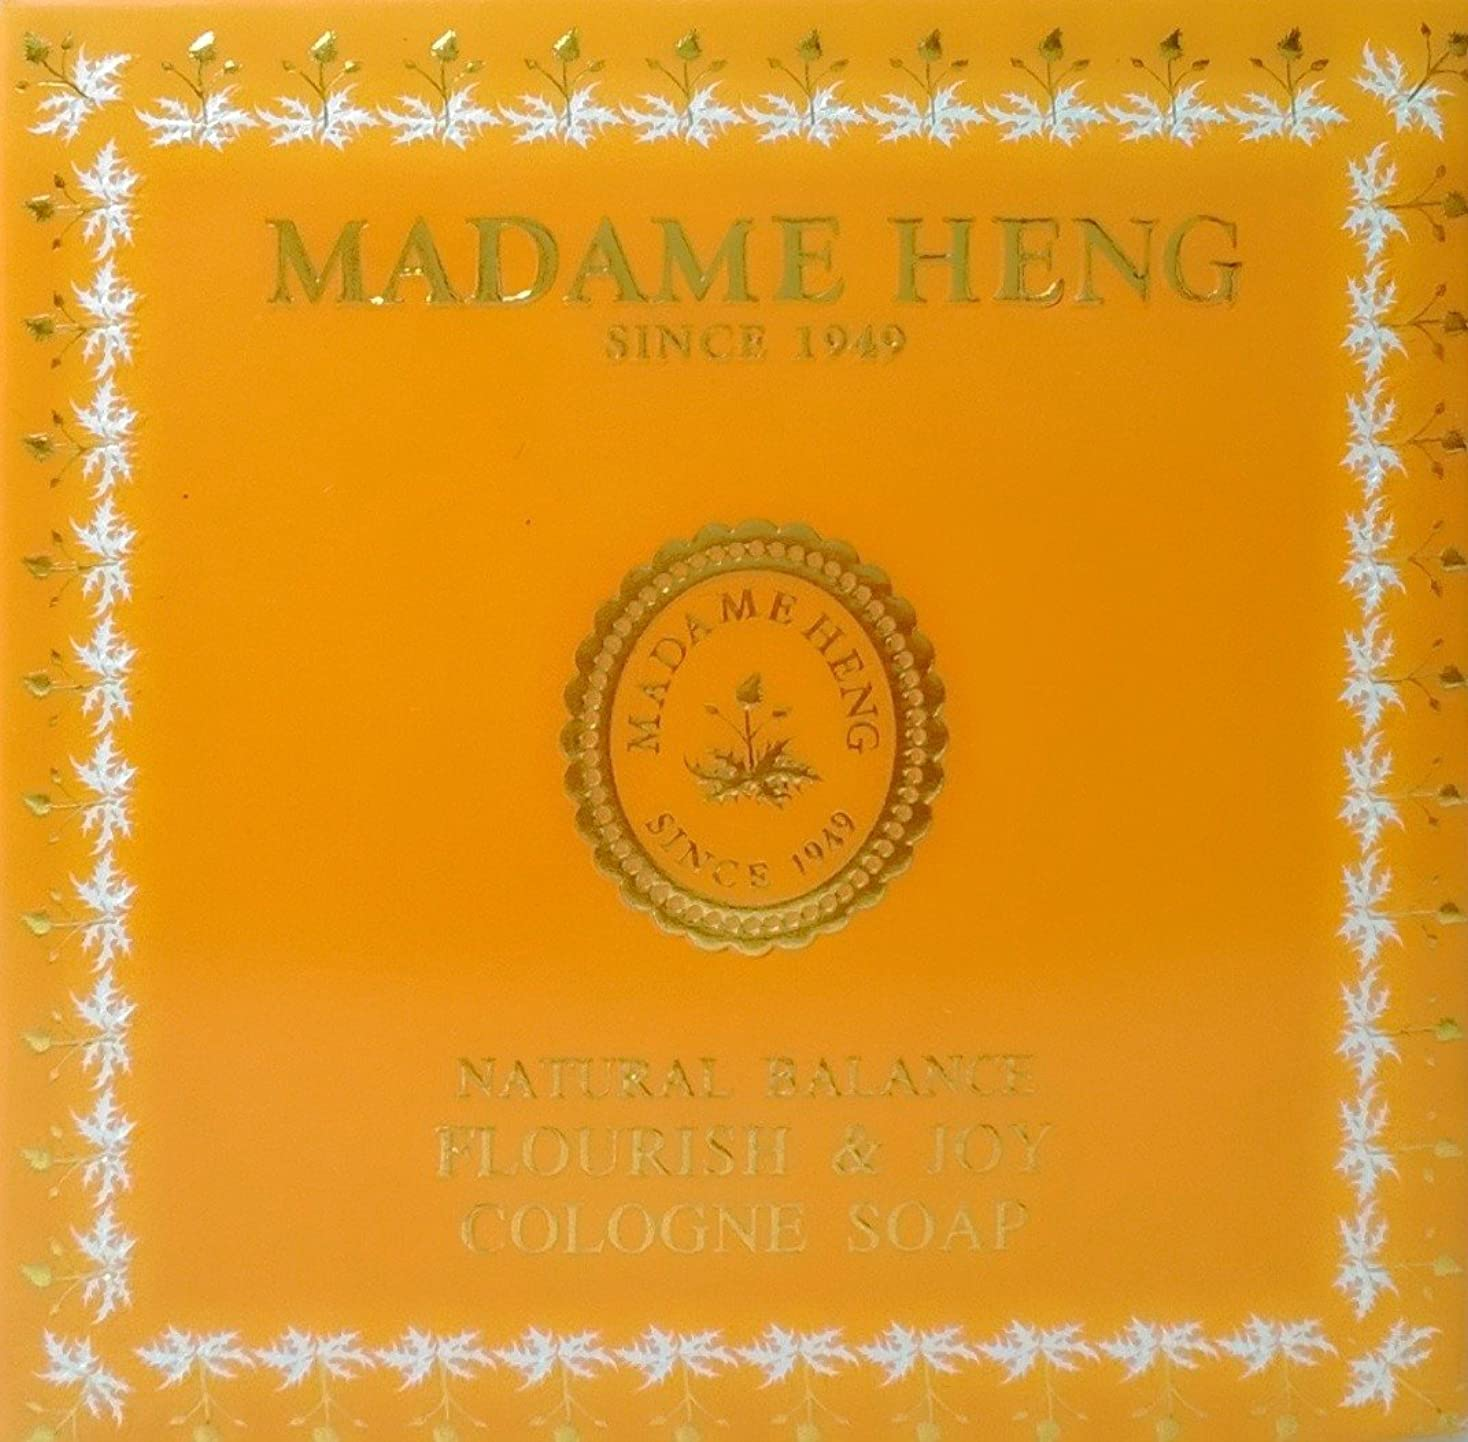 大きなスケールで見ると老朽化した封建MADAME HENG NATURAL BALANCE FLOURISH & JOY COLOGNE SOAP